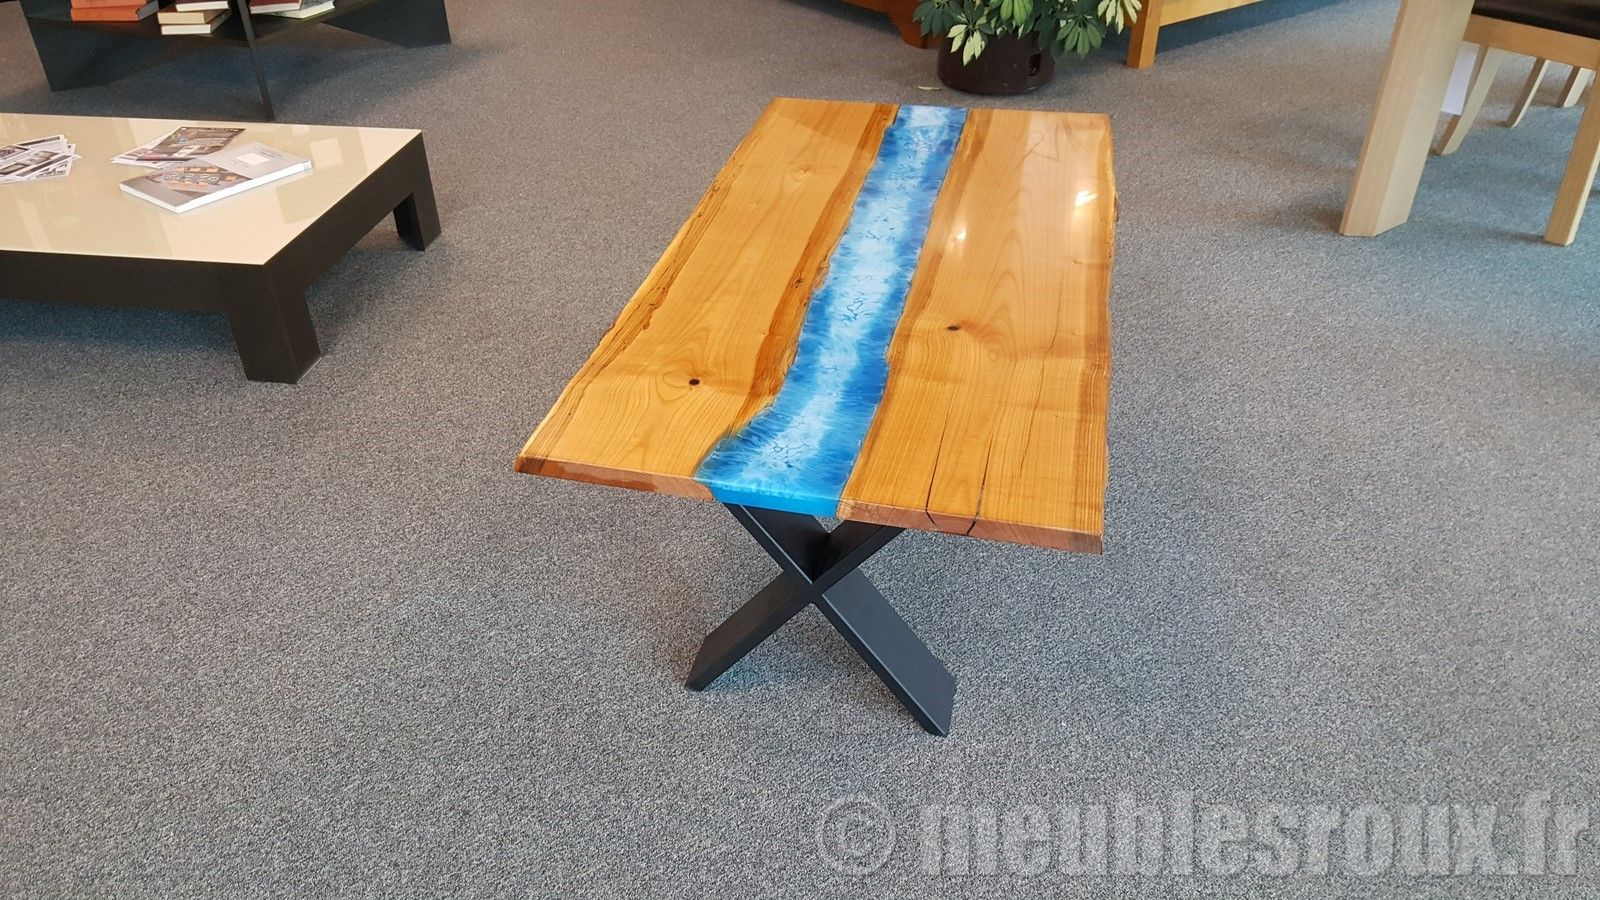 Table Basse En Merisier Et Resine Epoxy Table Basse Table Basse Design Table Basse En Merisier